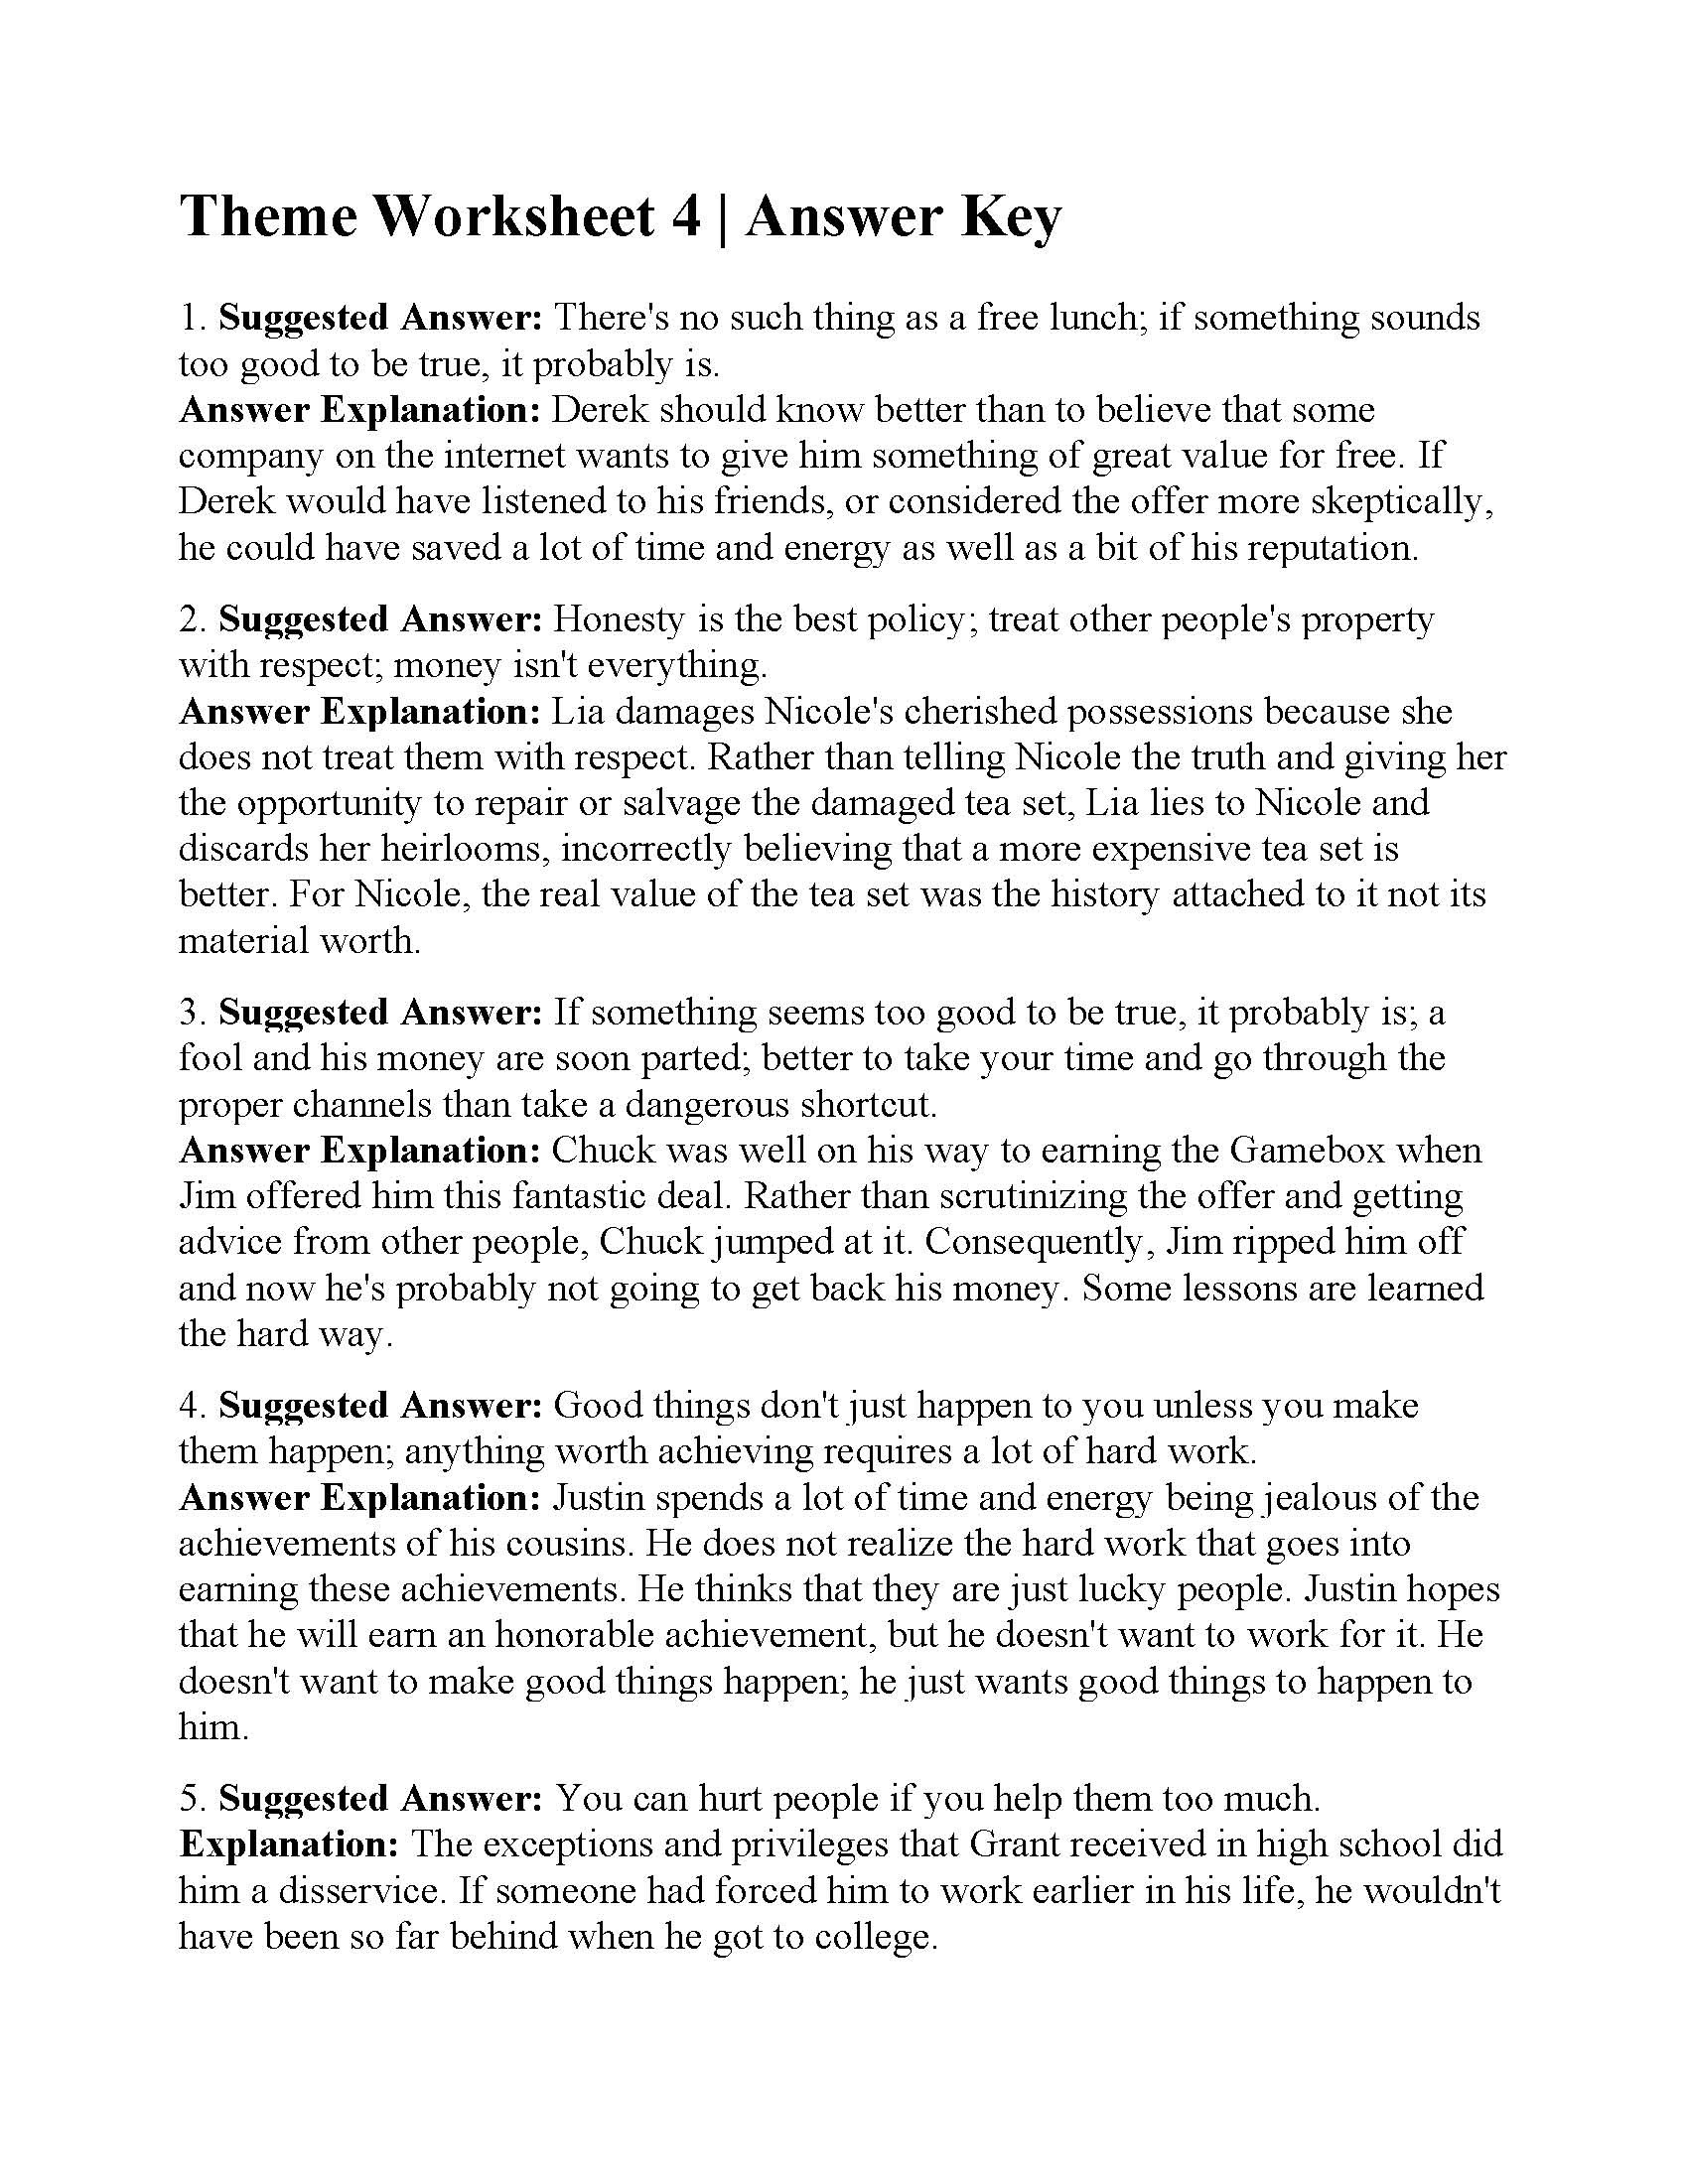 Theme Worksheet 4th Grade theme Worksheet 4